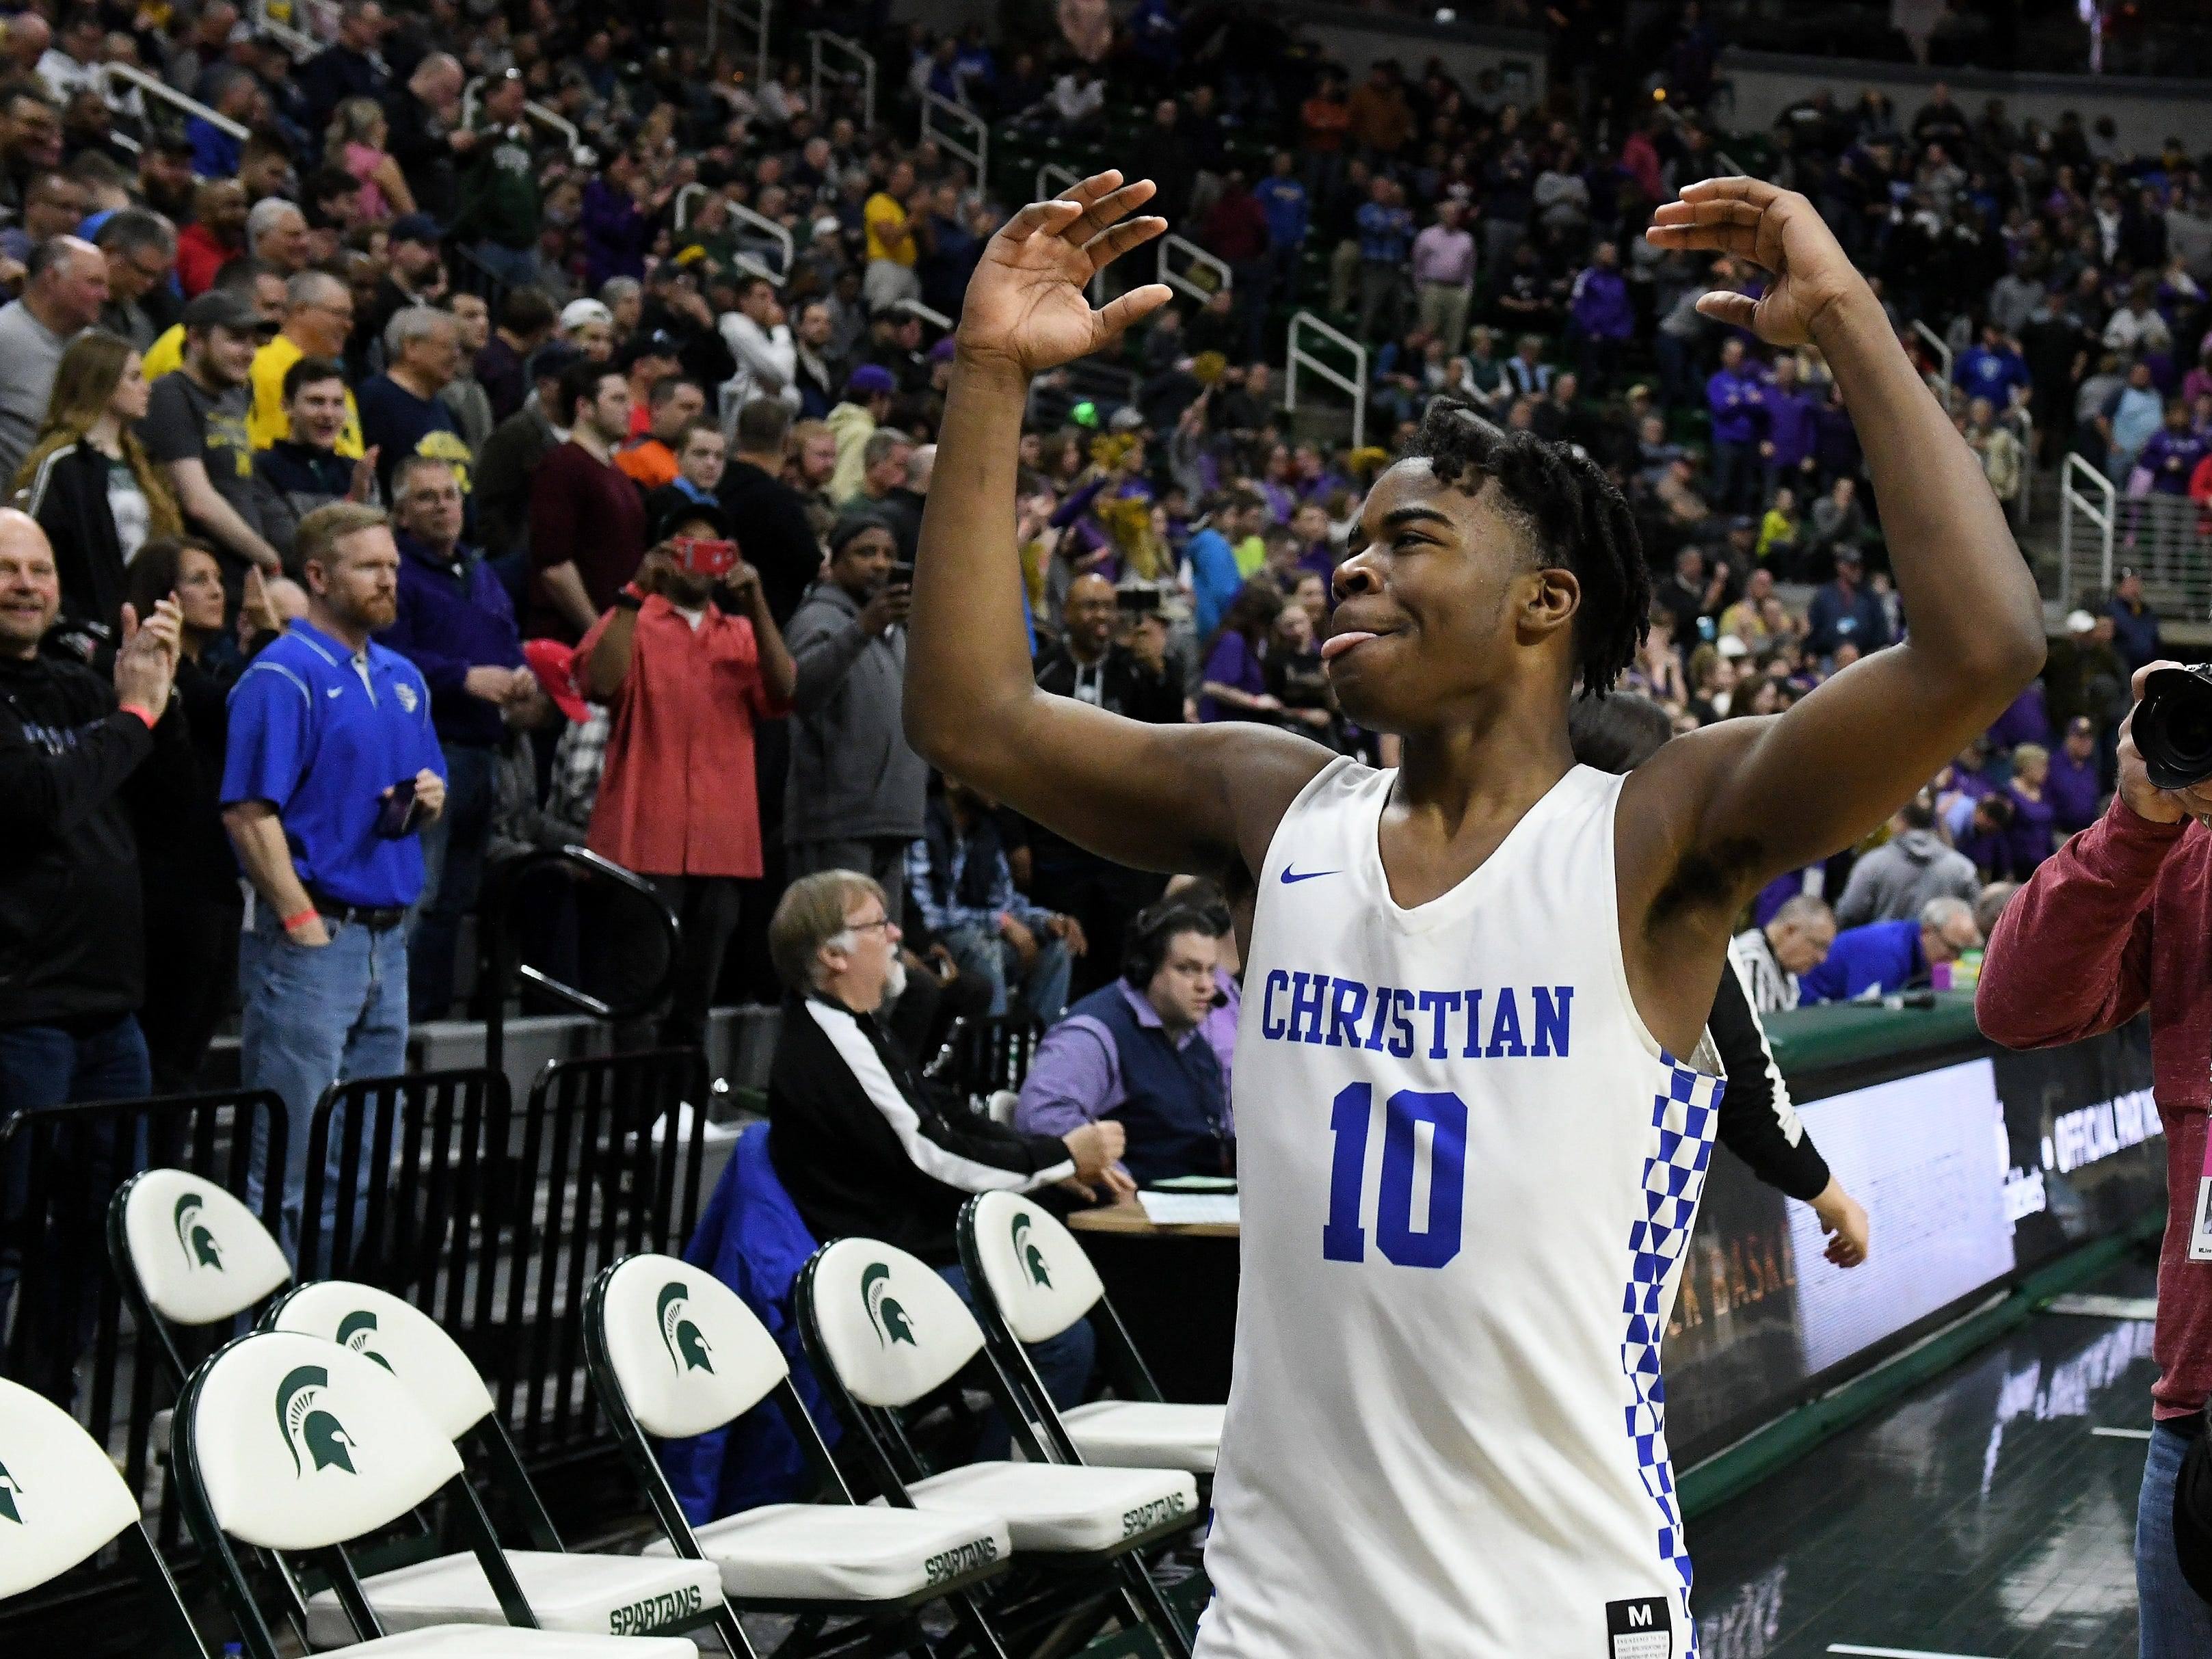 Southfield Christian guard Jon Sanders comes over to celebrate with the fans after the win.